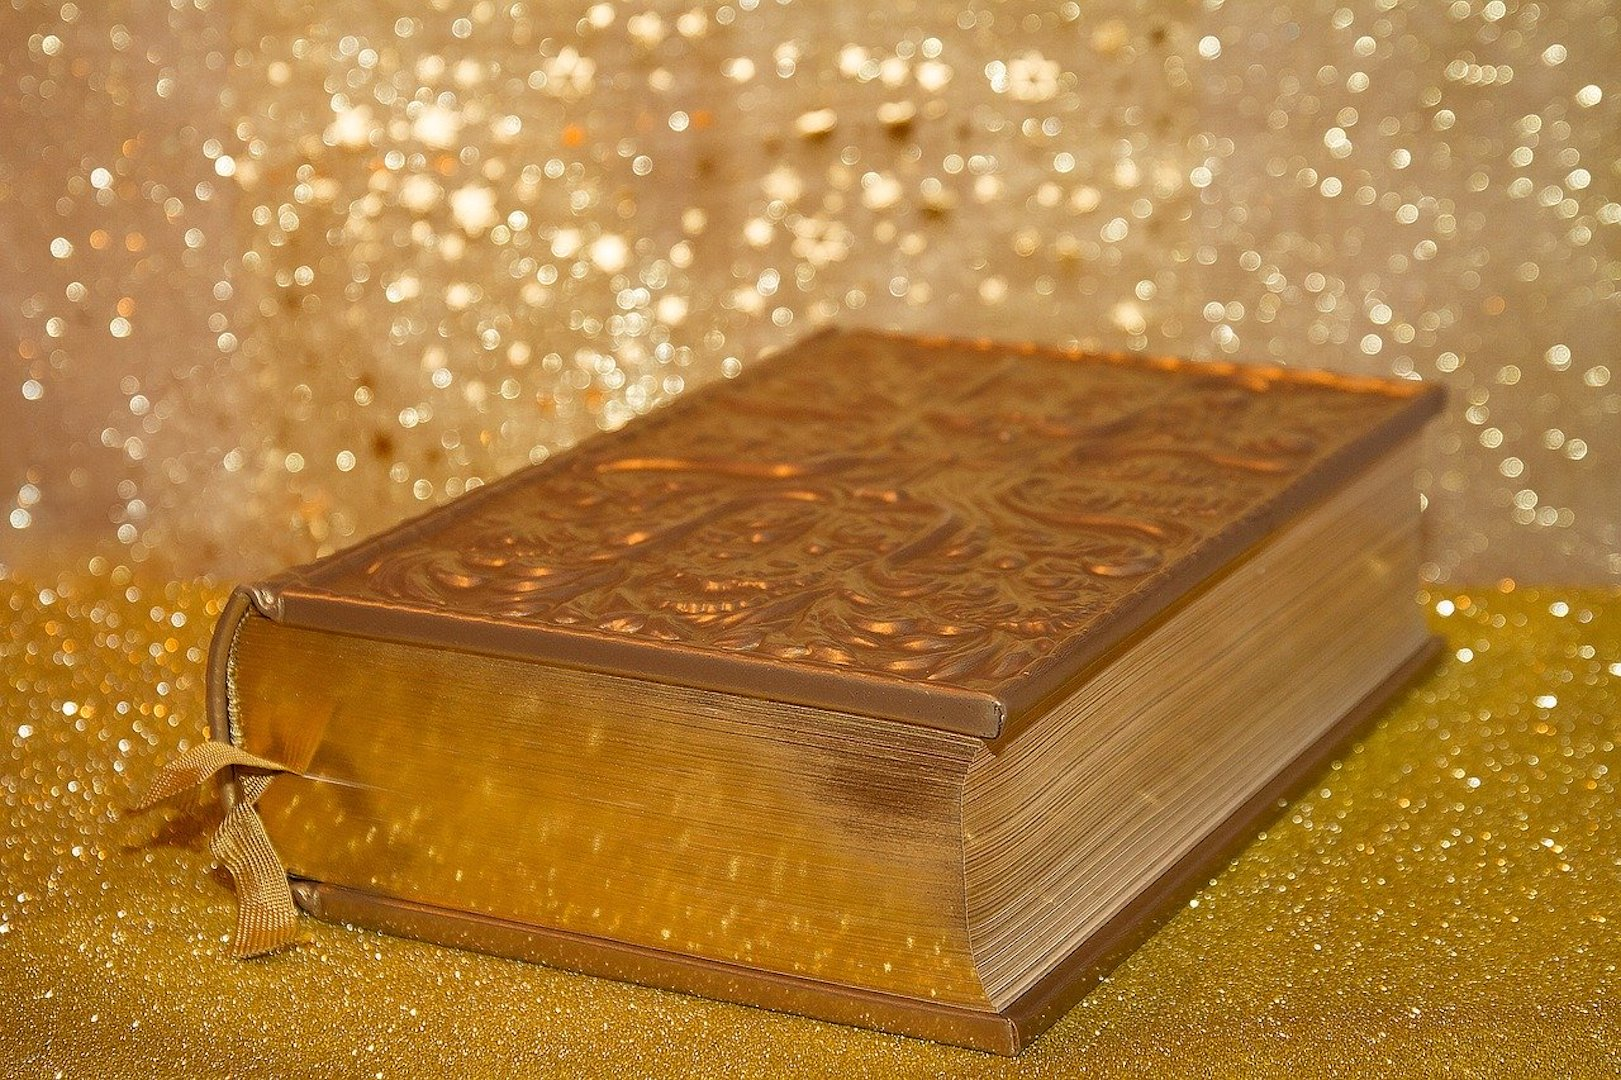 Image of gold bible that is closed